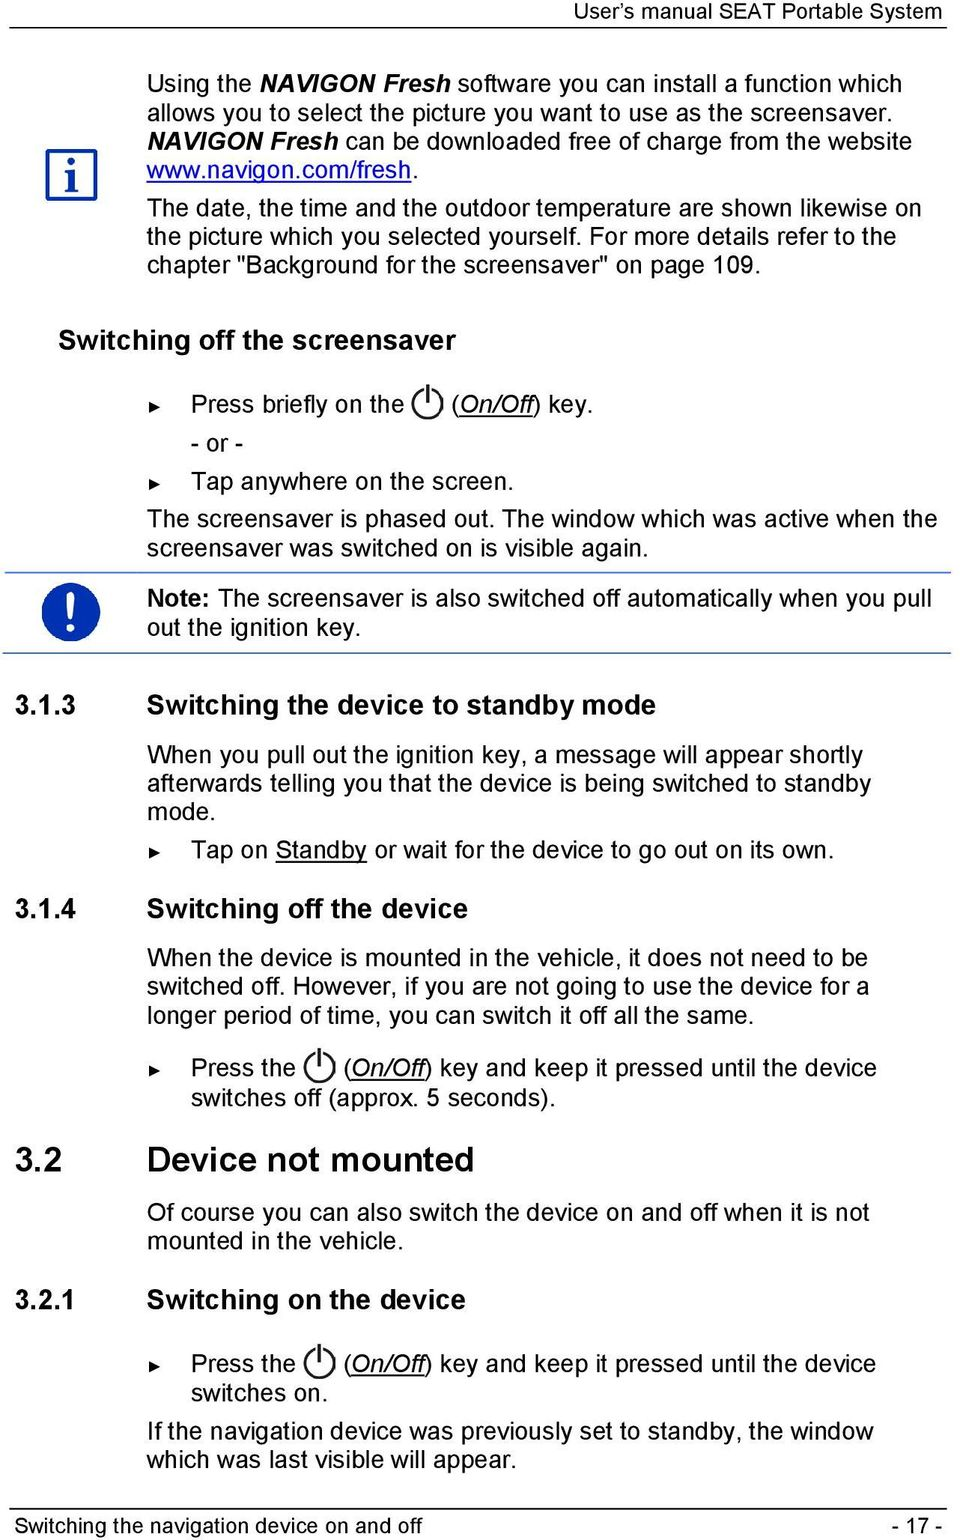 "For more details refer to the chapter ""Background for the screensaver"" on page 109. Switching off the screensaver Press briefly on the (On/Off) key. - or - Tap anywhere on the screen."